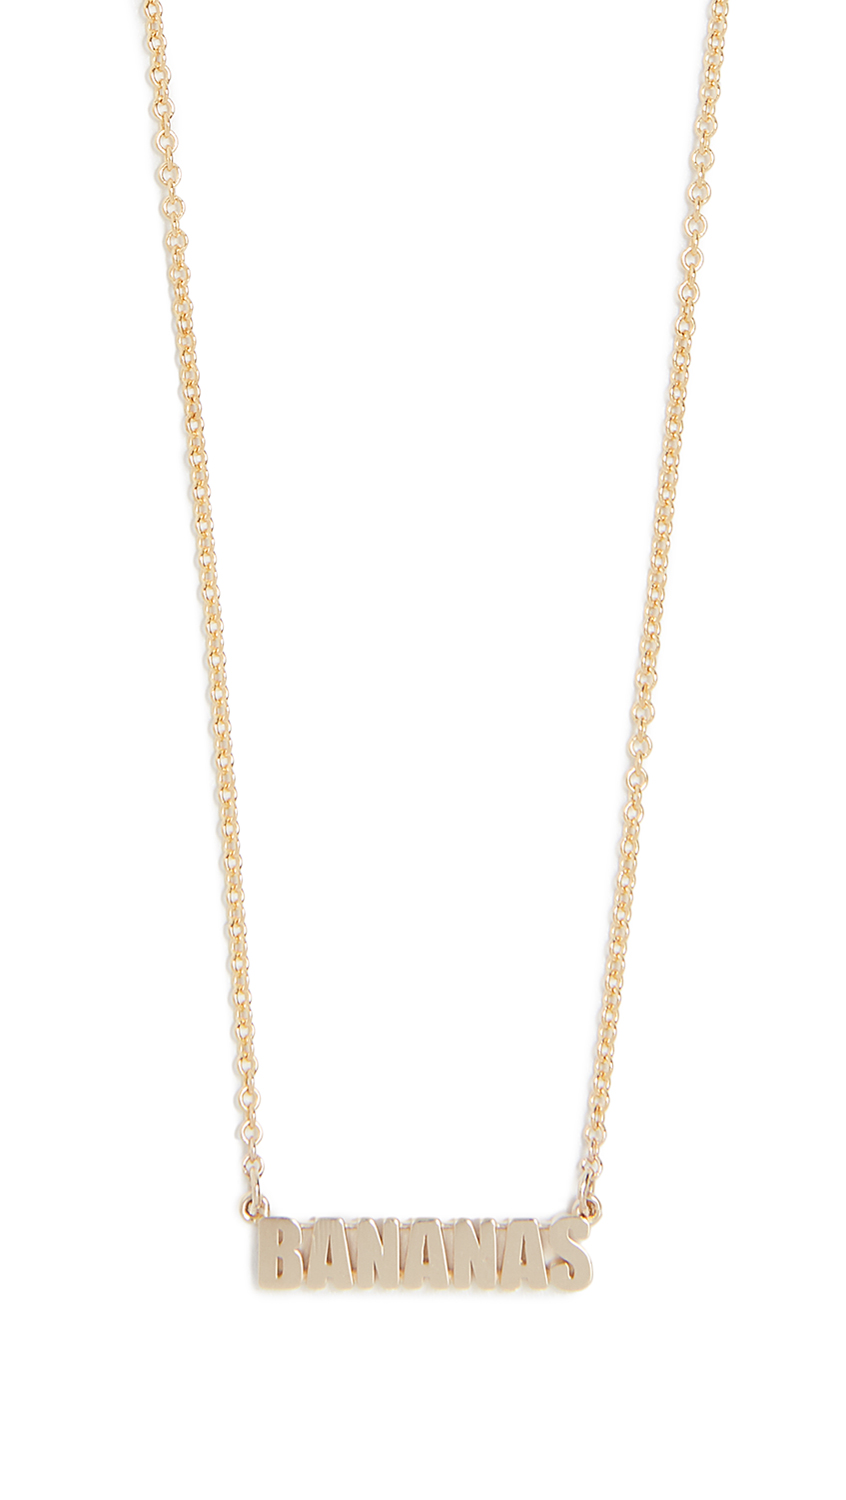 ESTABLISHED 14K Gold Bananas Necklace in Yellow Gold